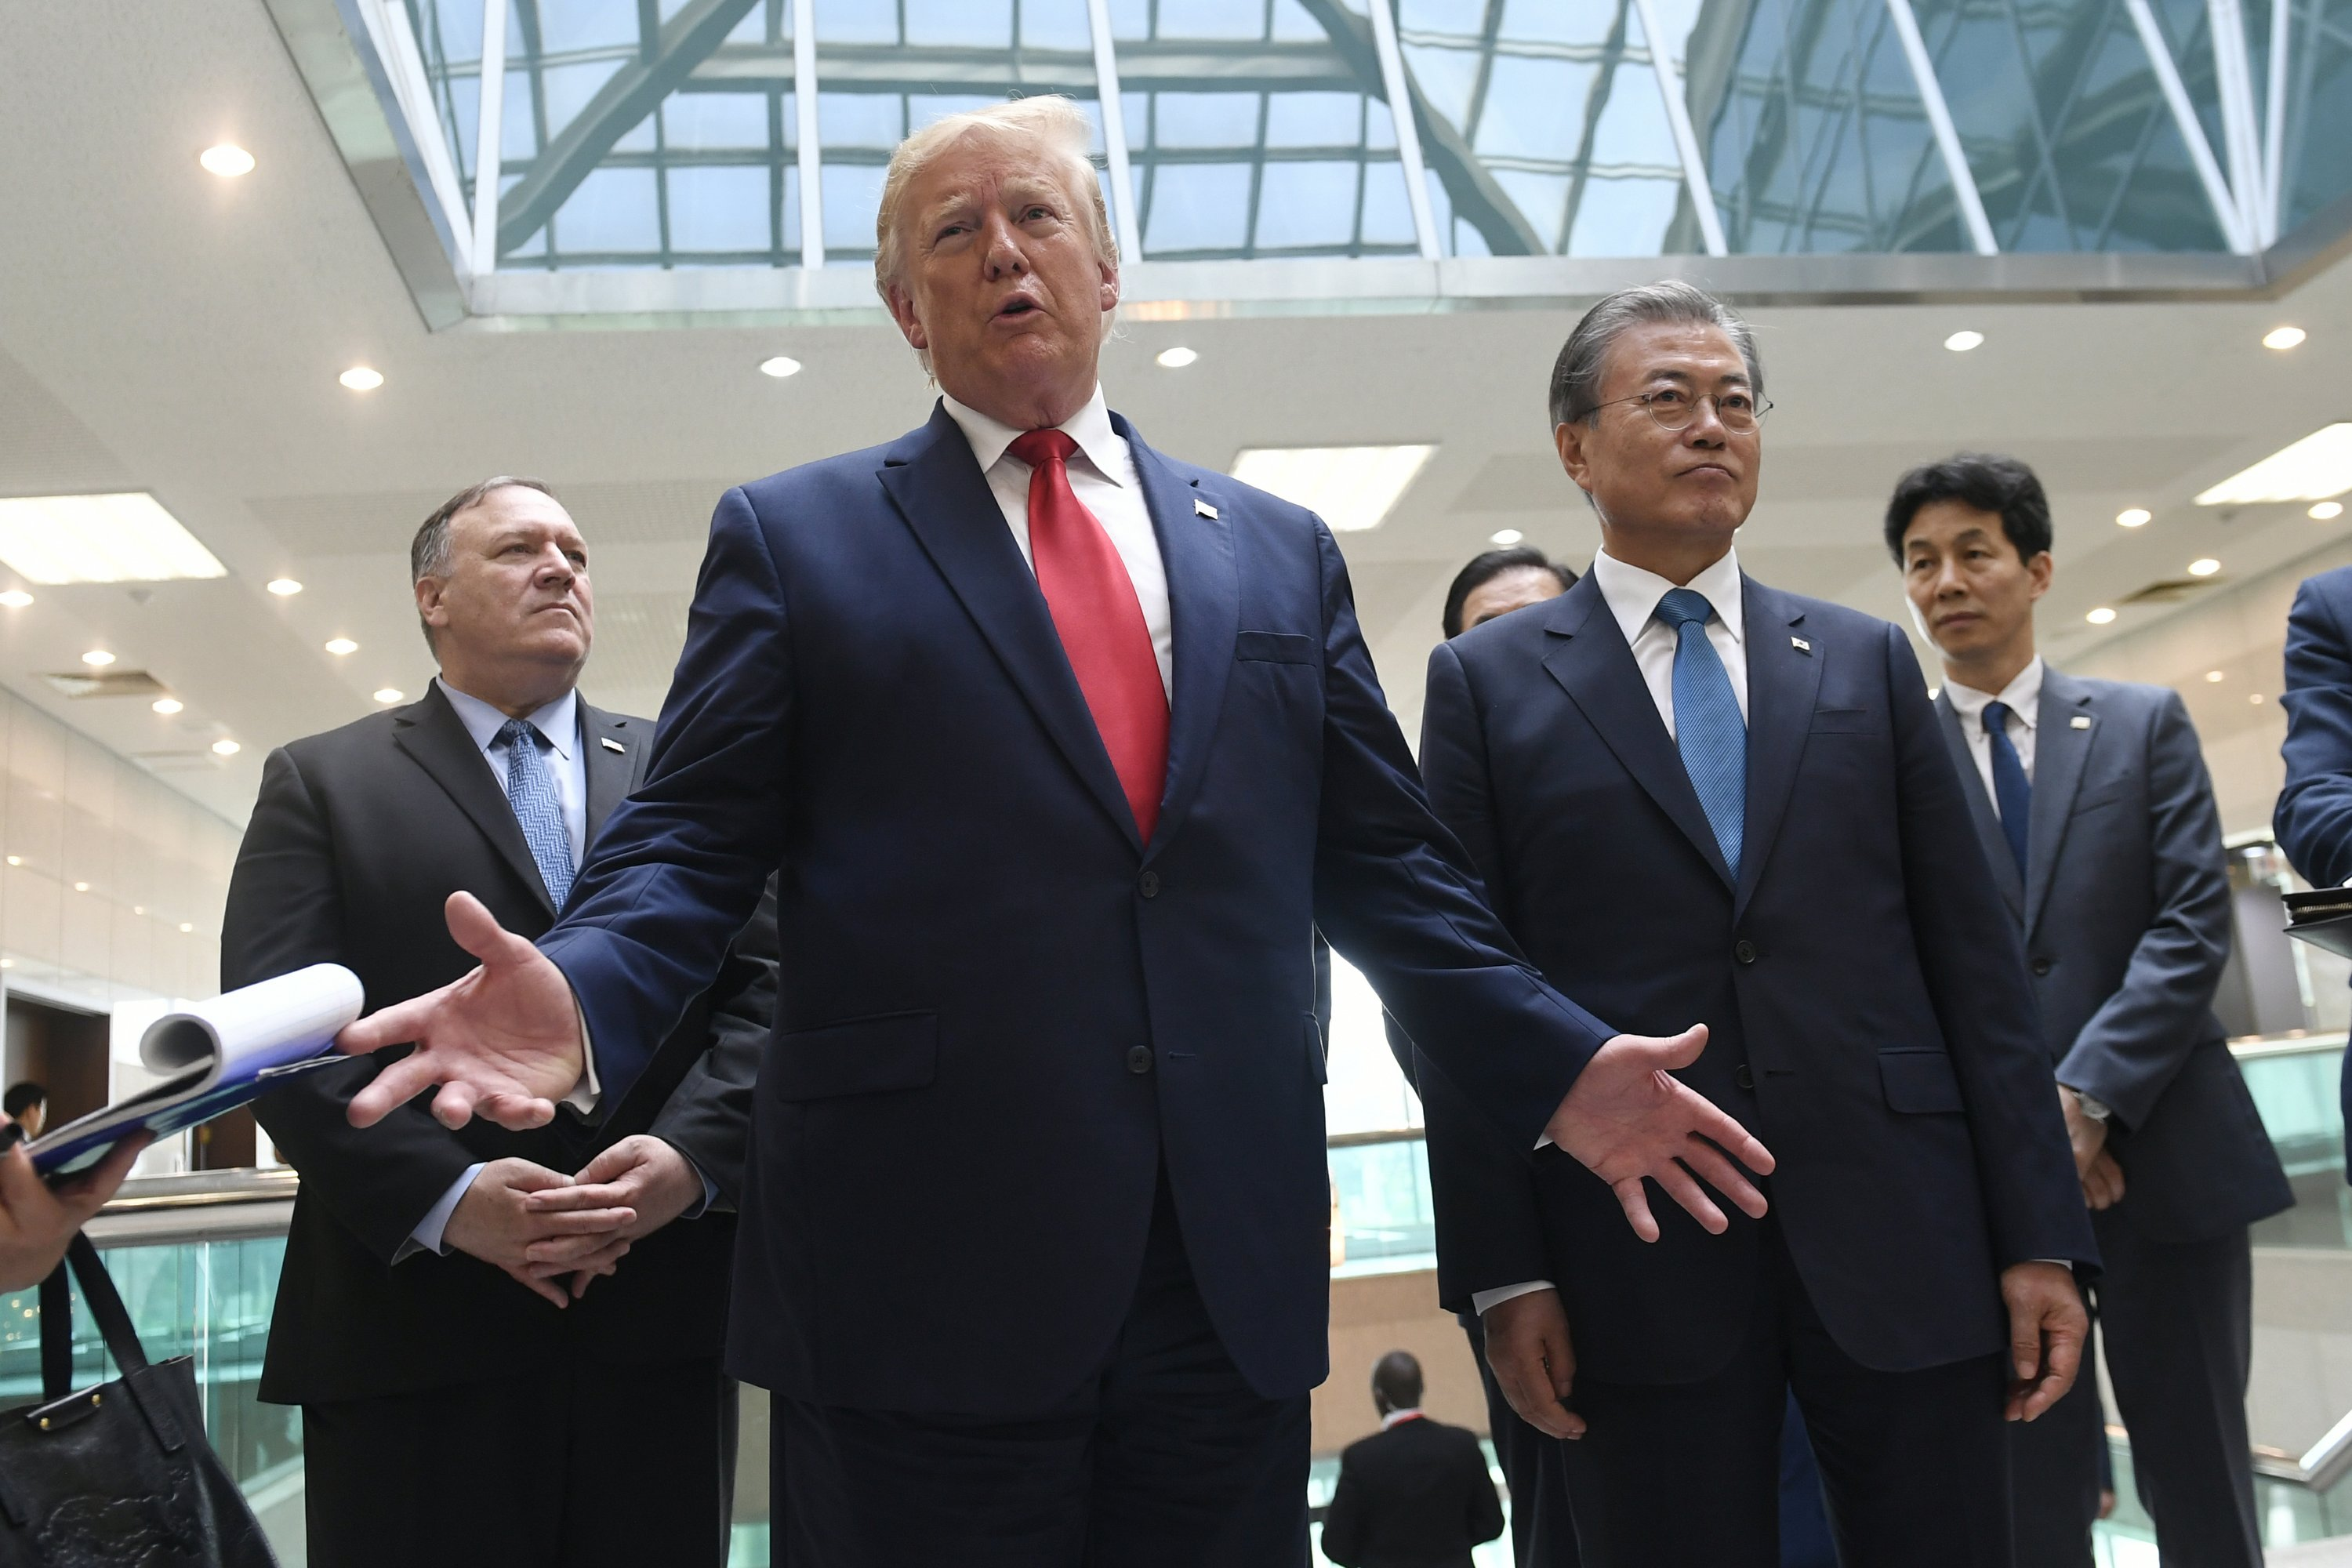 AP FACT CHECK: Trump on NKorea, wages, climate; Dem misfires